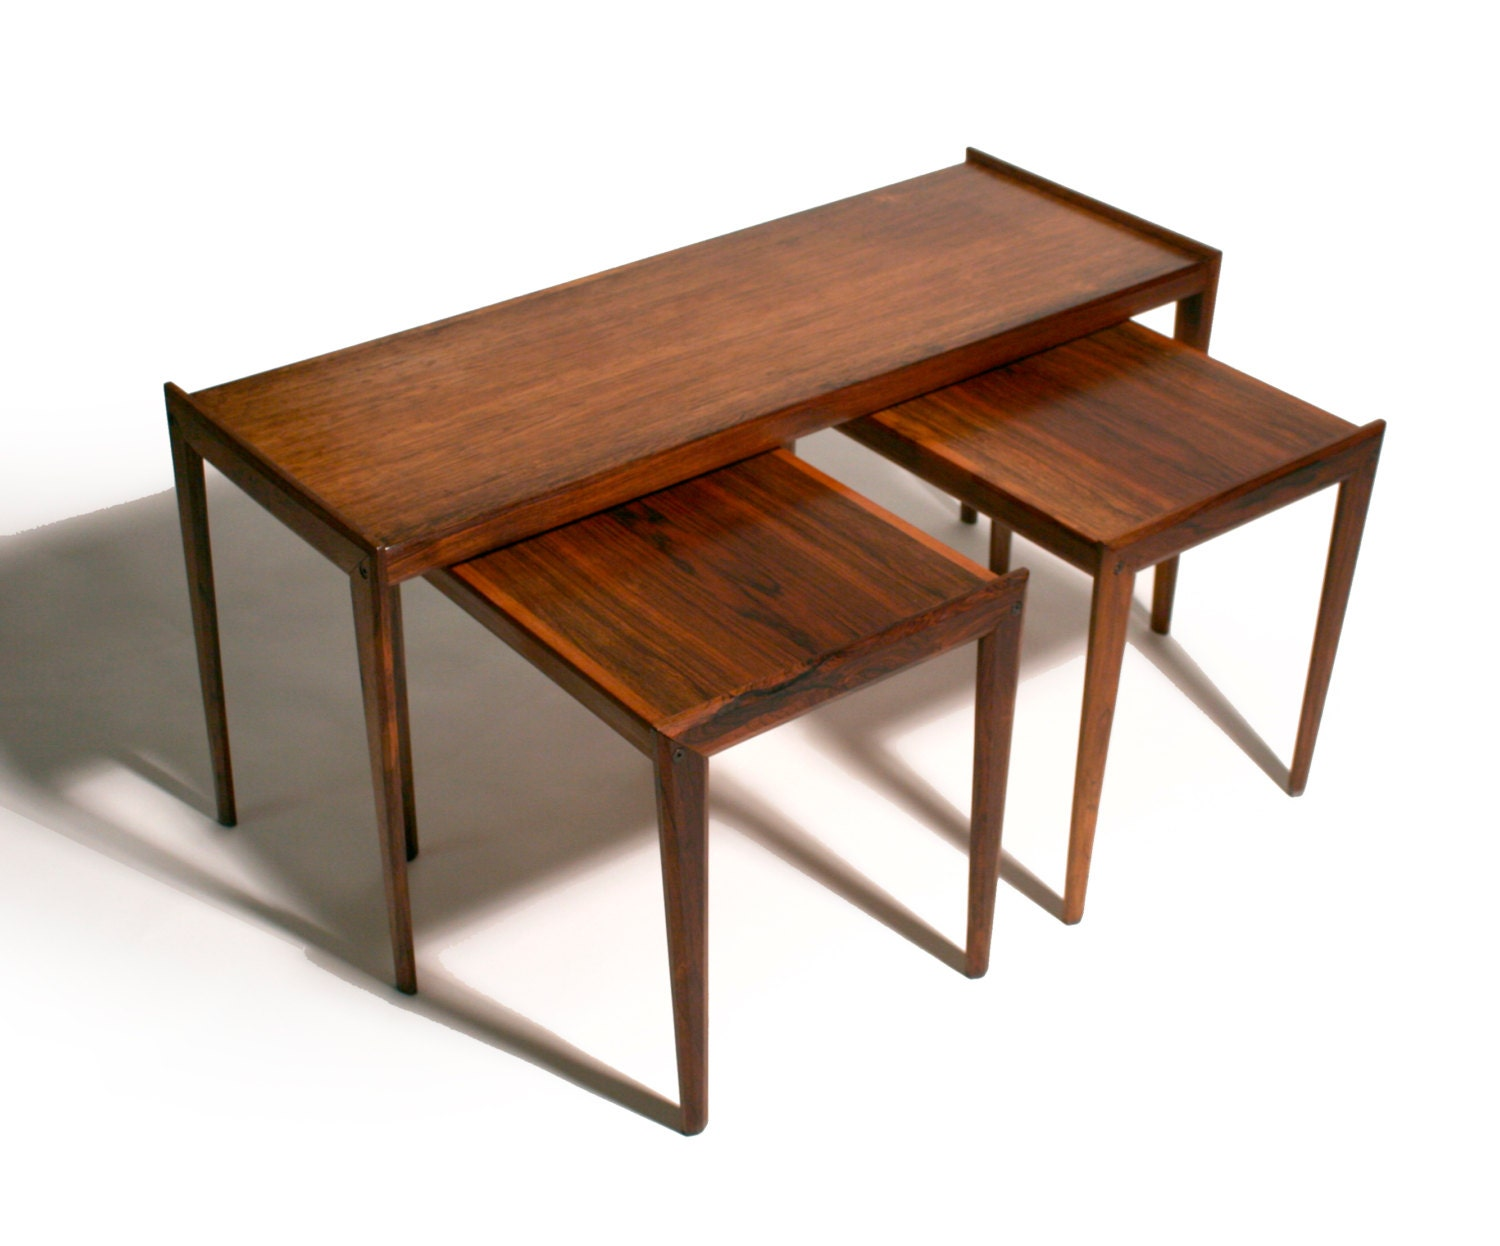 Amazing contemporary nesting tables stevieawardsjapan